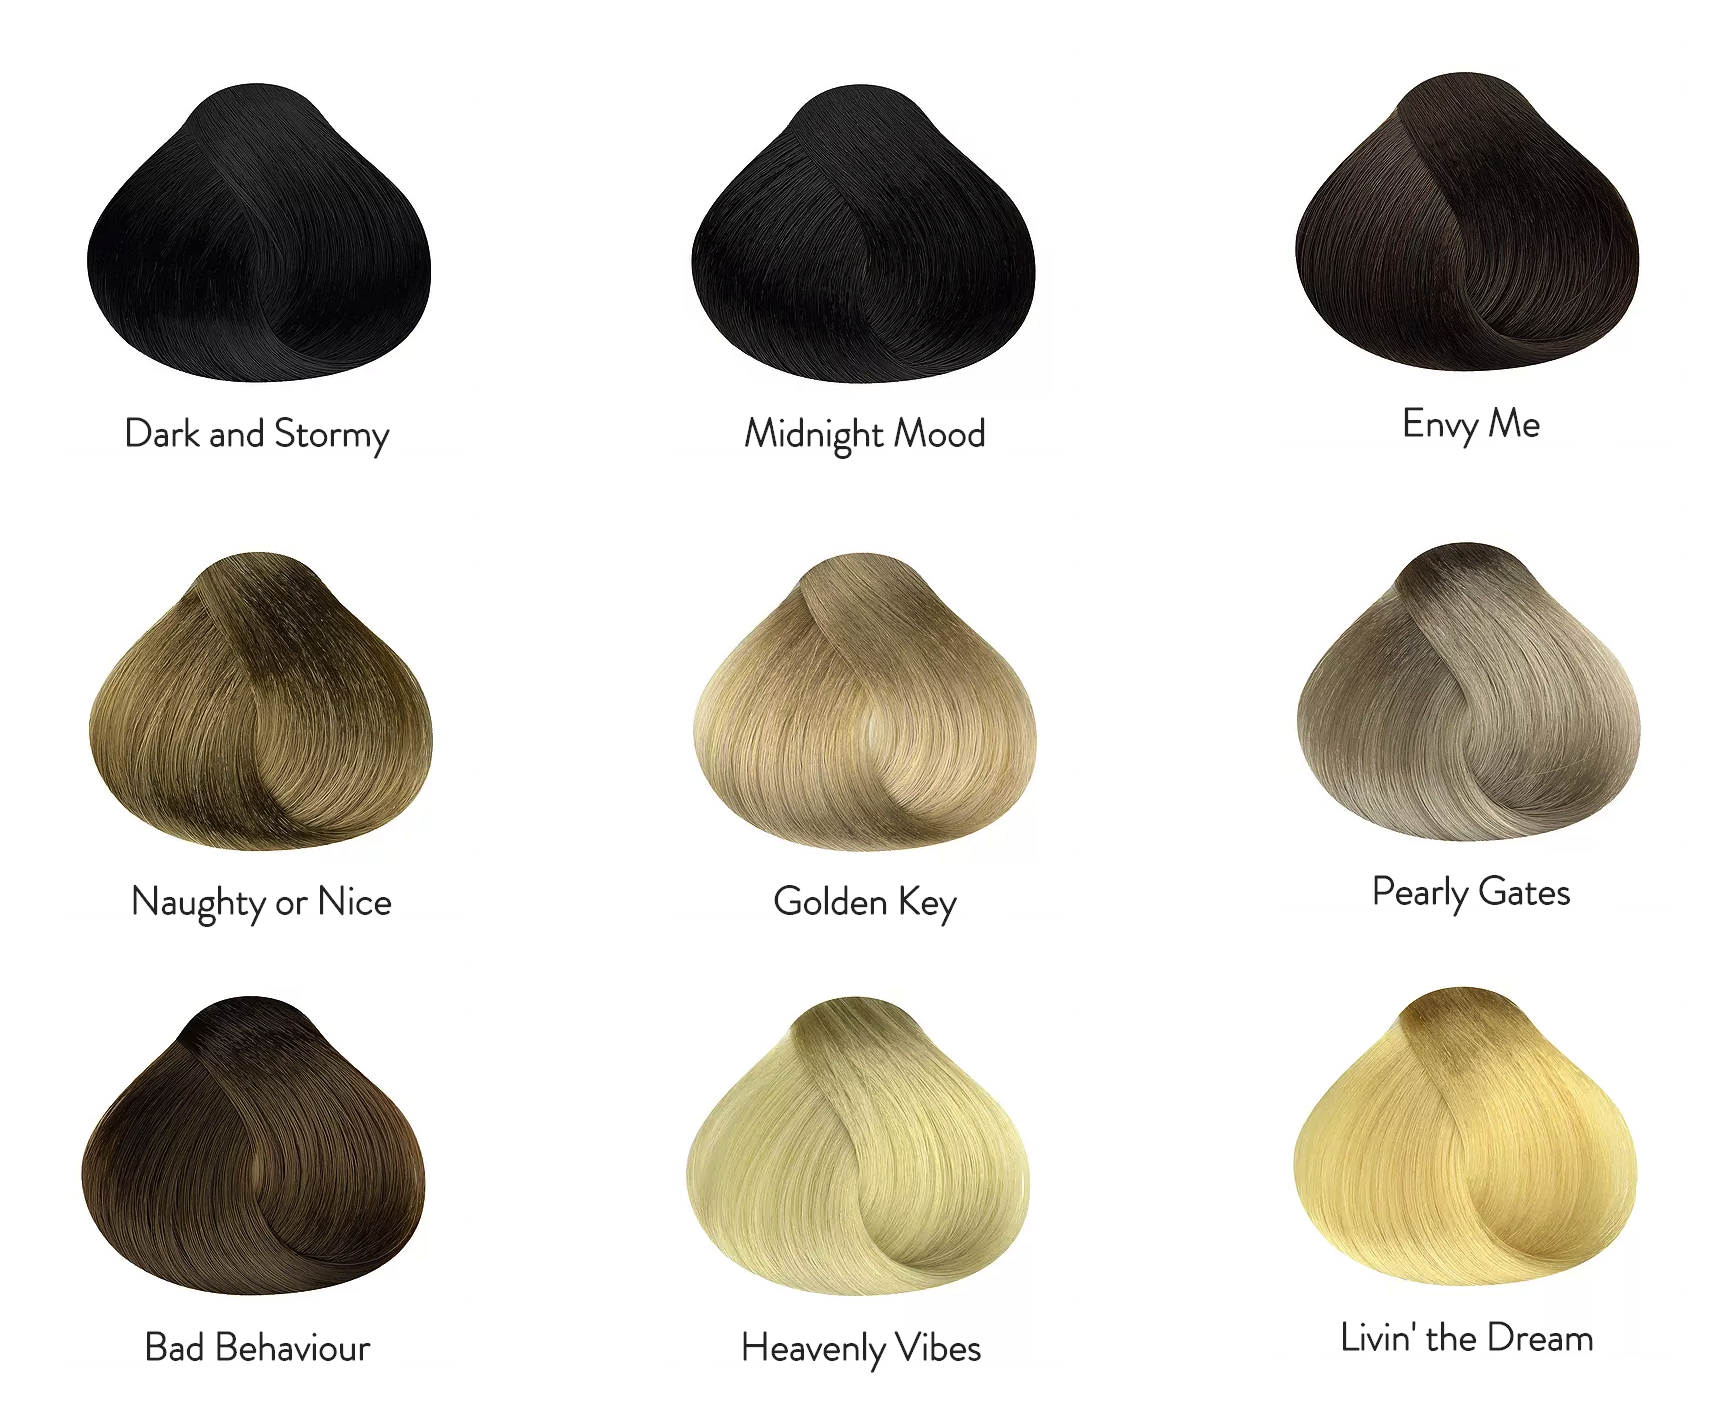 Our hair extension colors